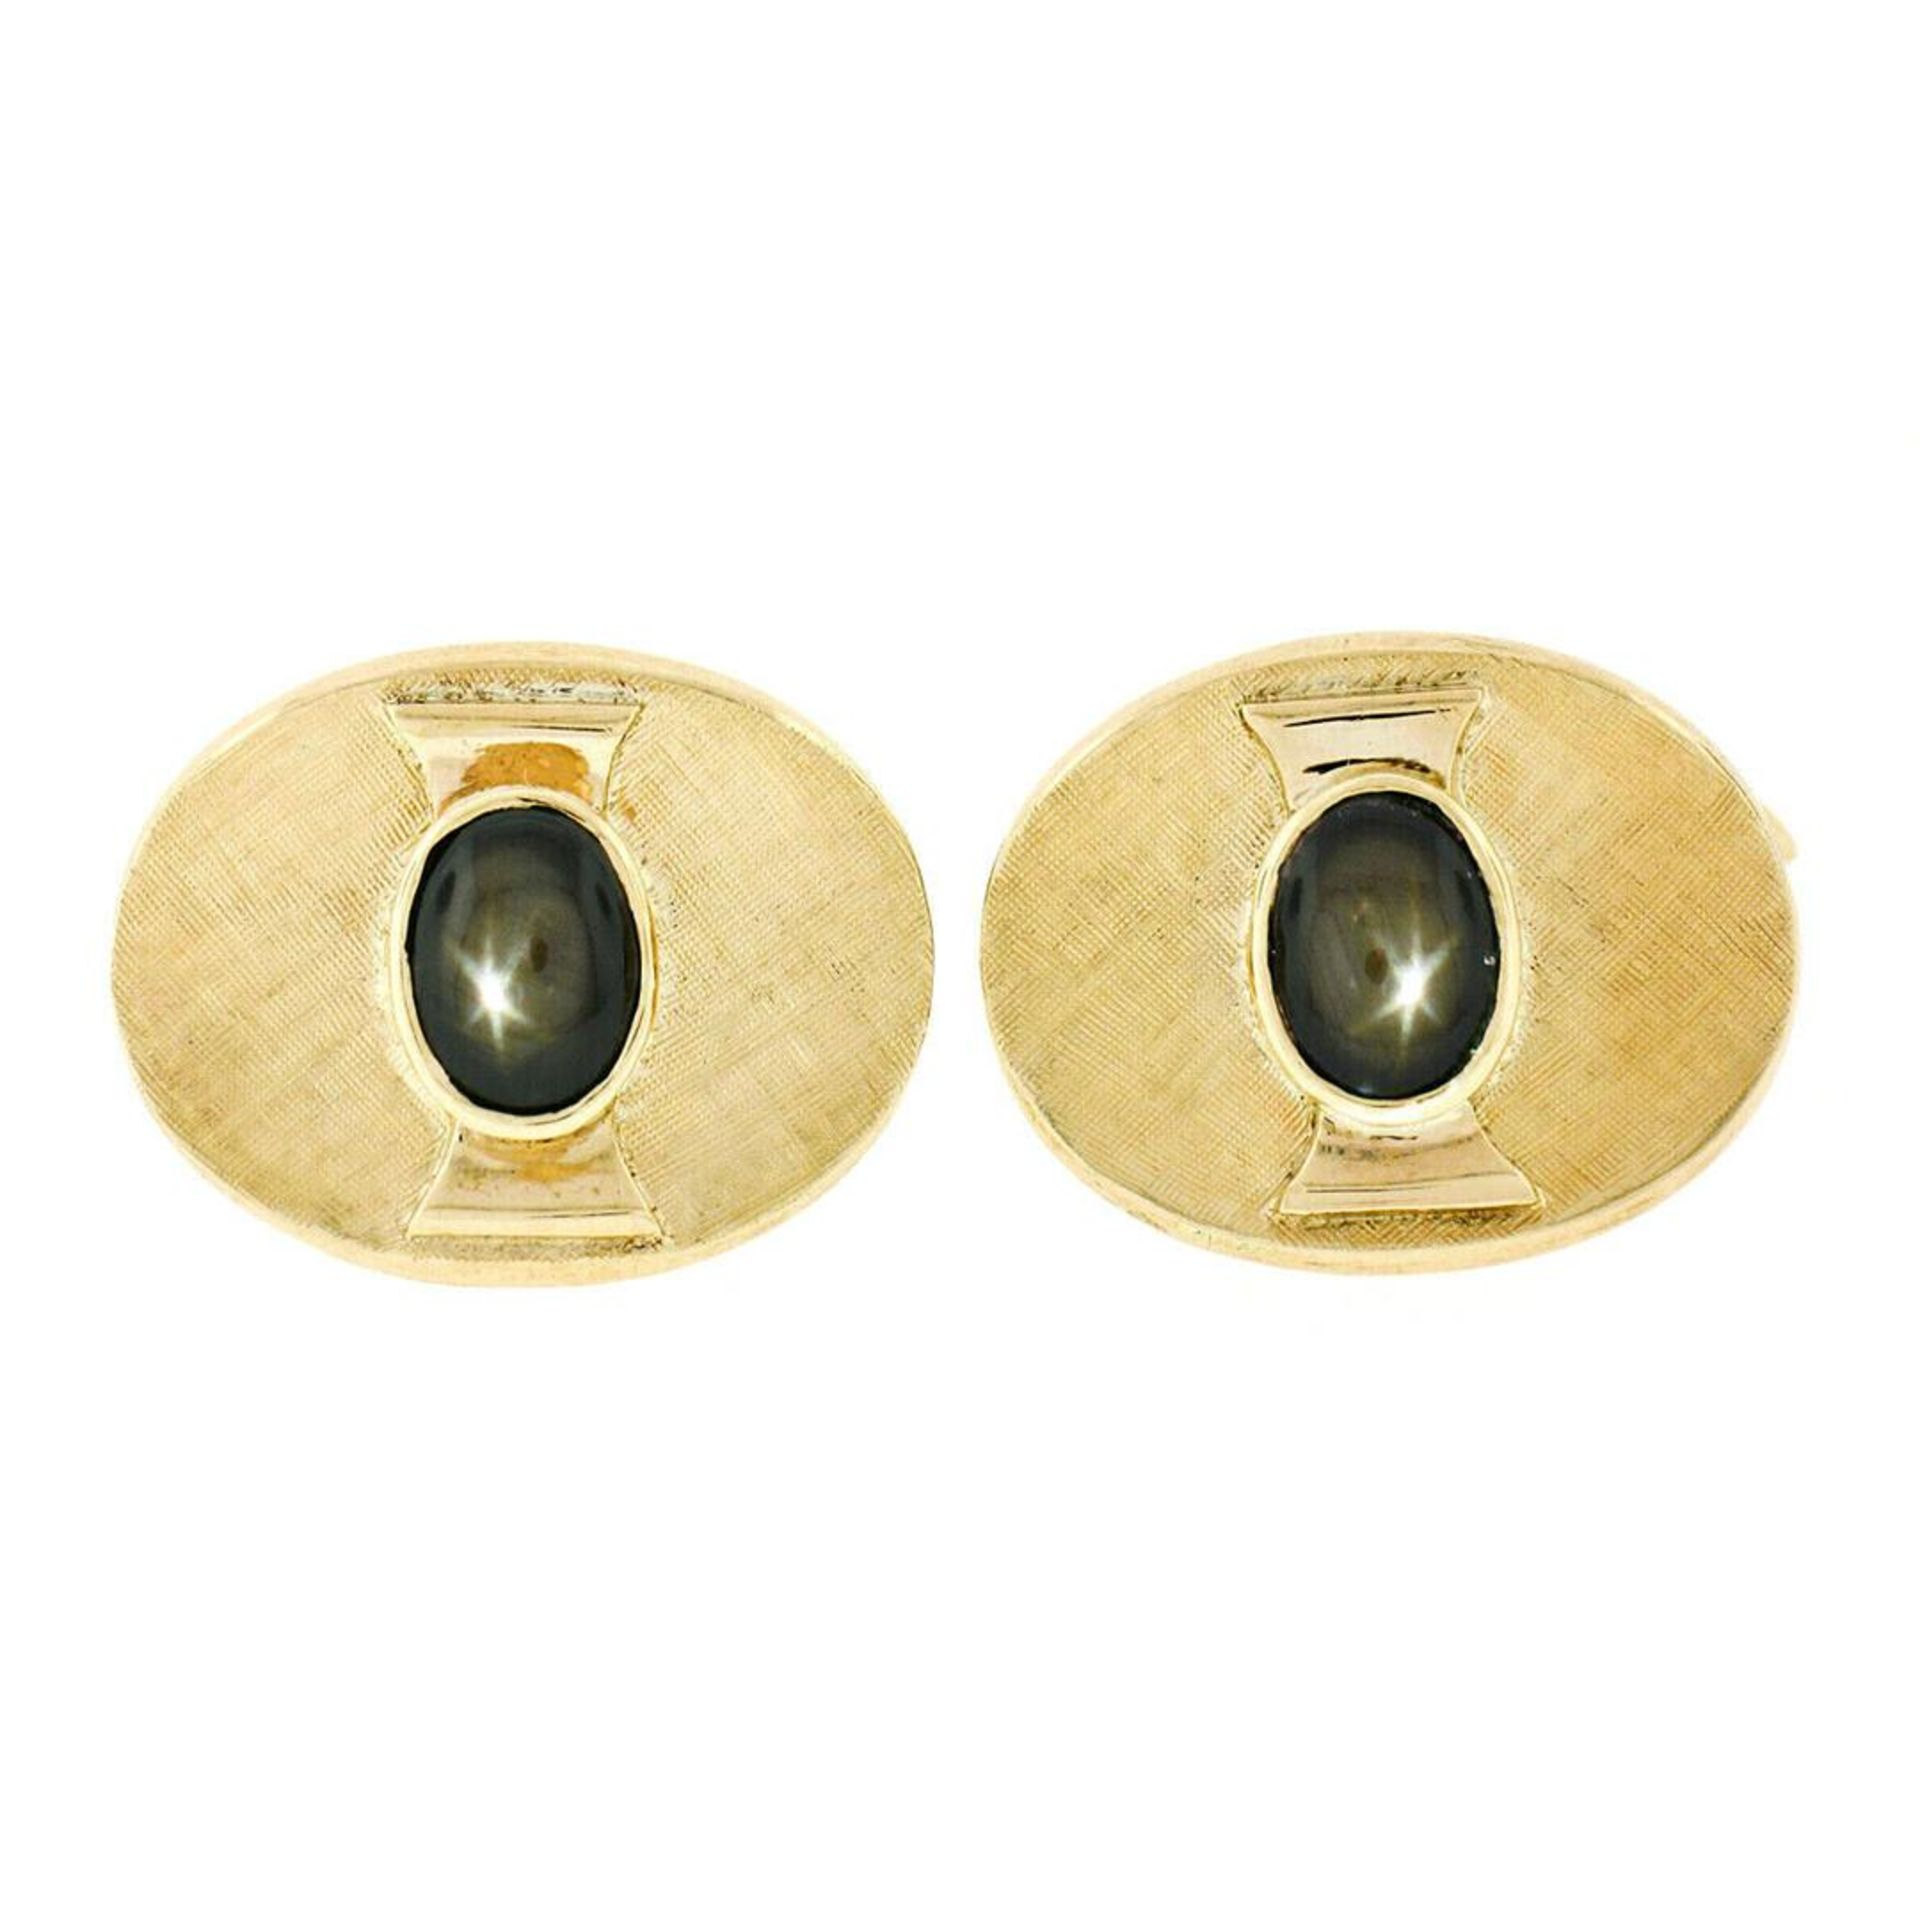 Vintage Men's 18kt Gold Oval Brown Star Sapphire Florentine Cuff Links